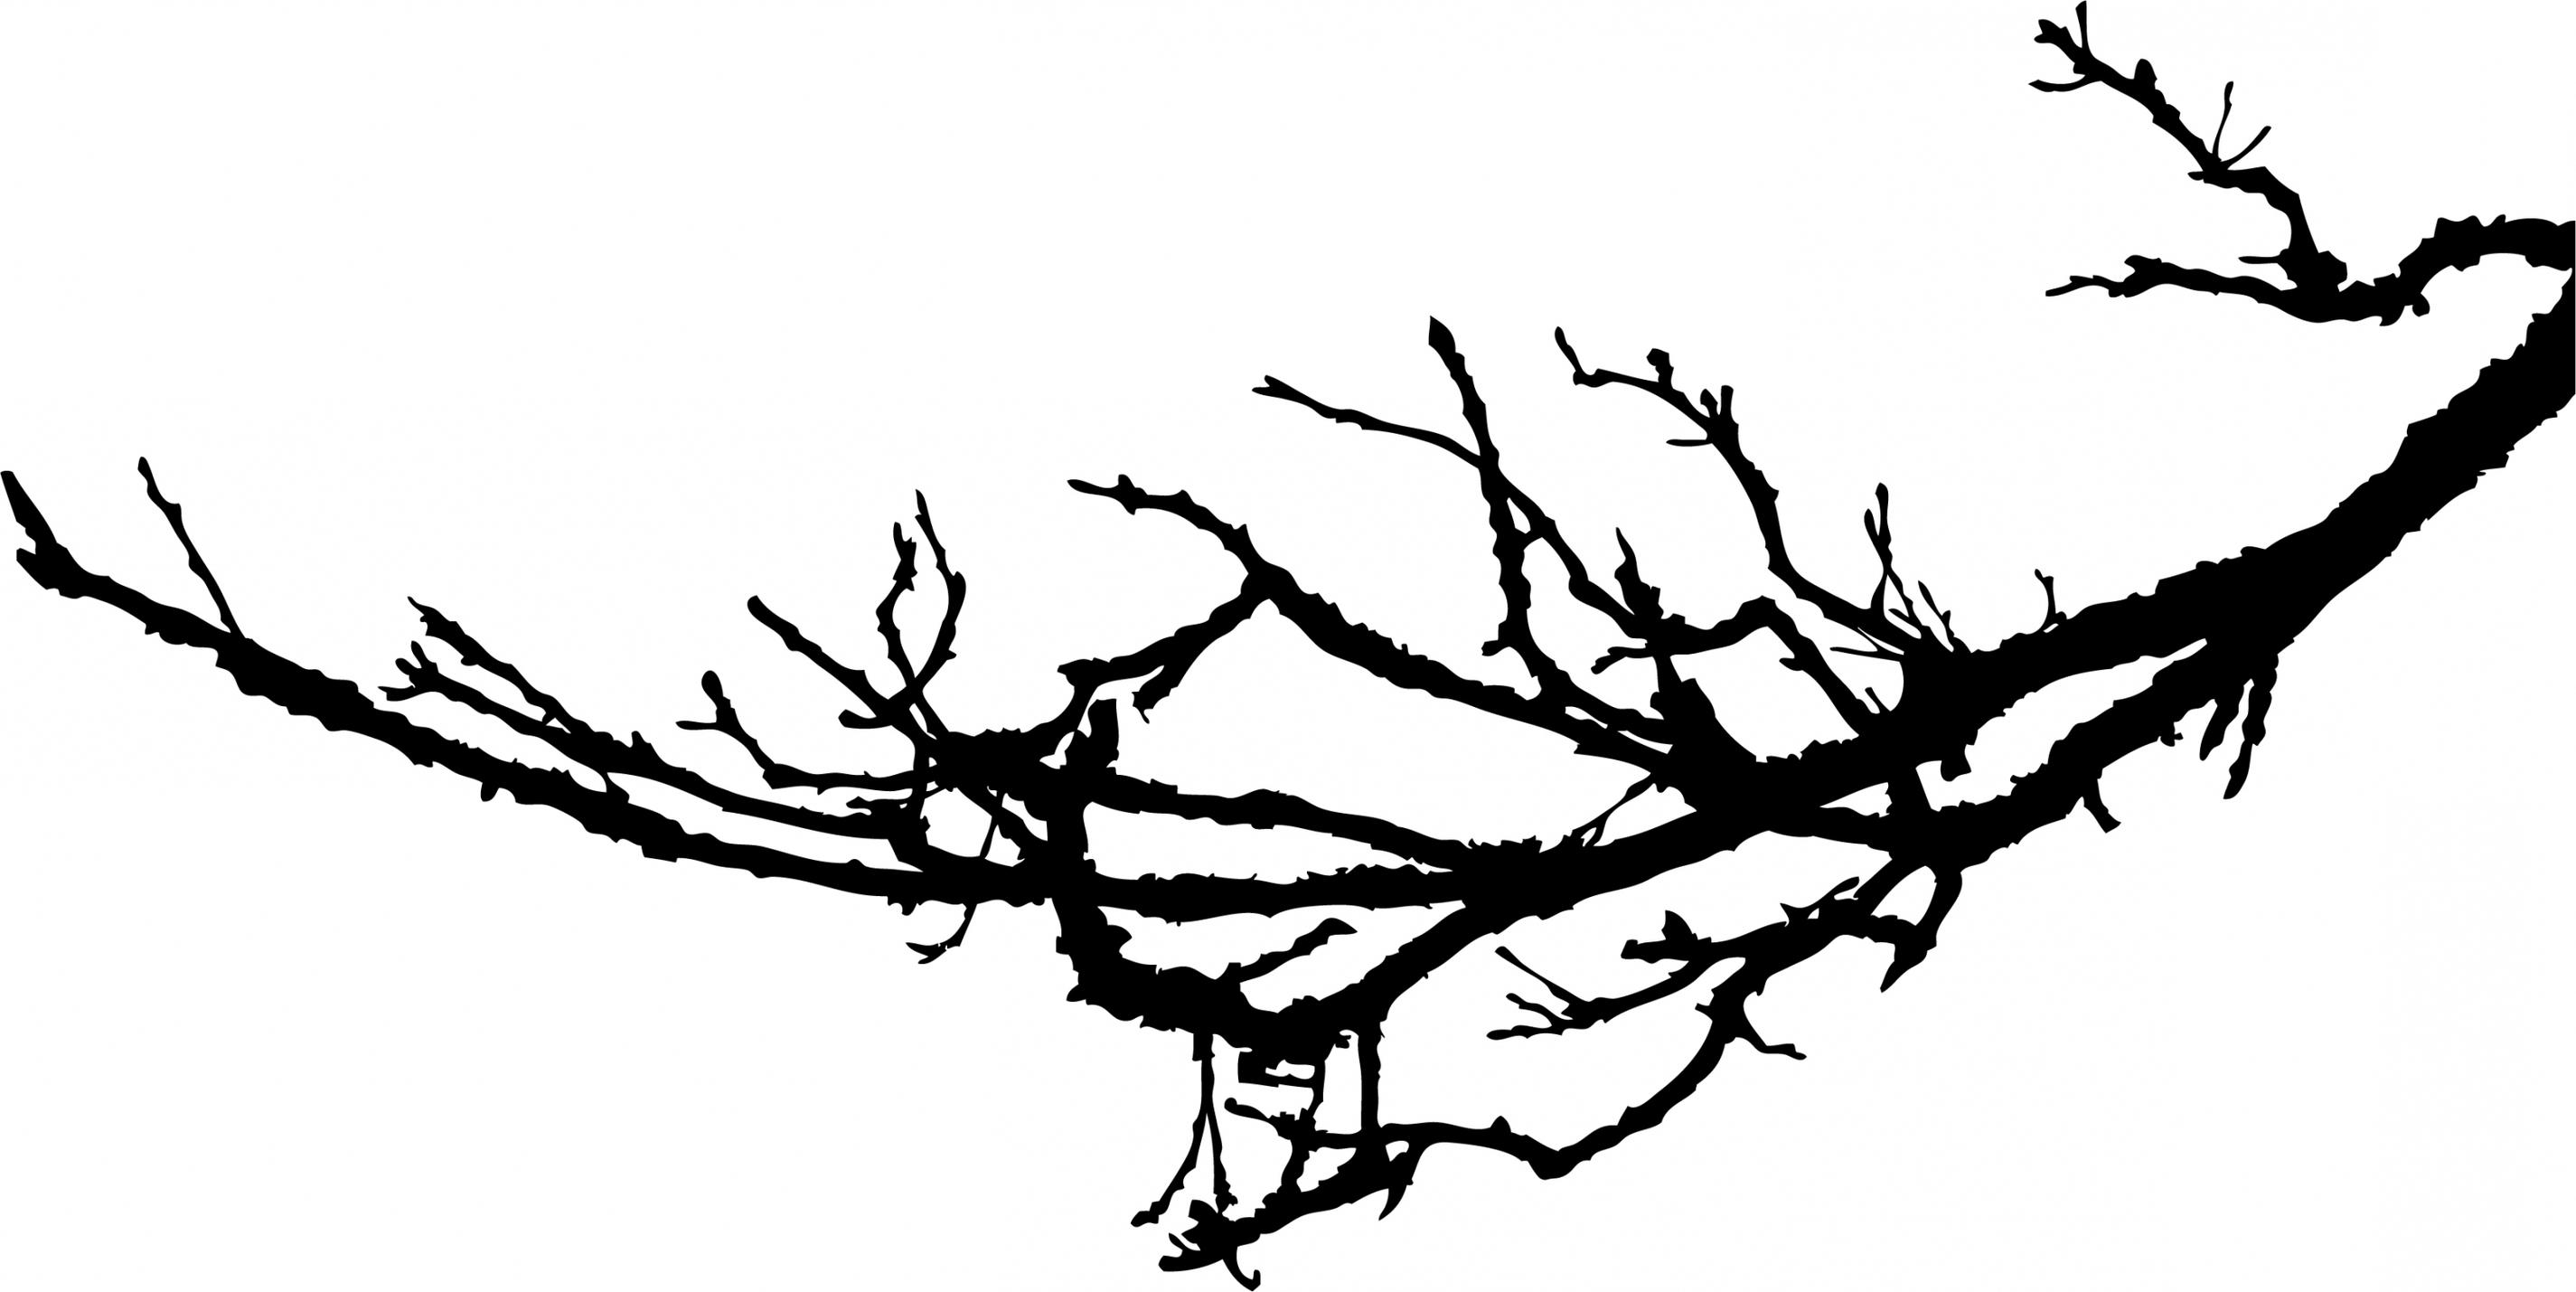 2850x1429 Best Hd Tree Branch Silhouette Clip Art Photos Free Vector Art